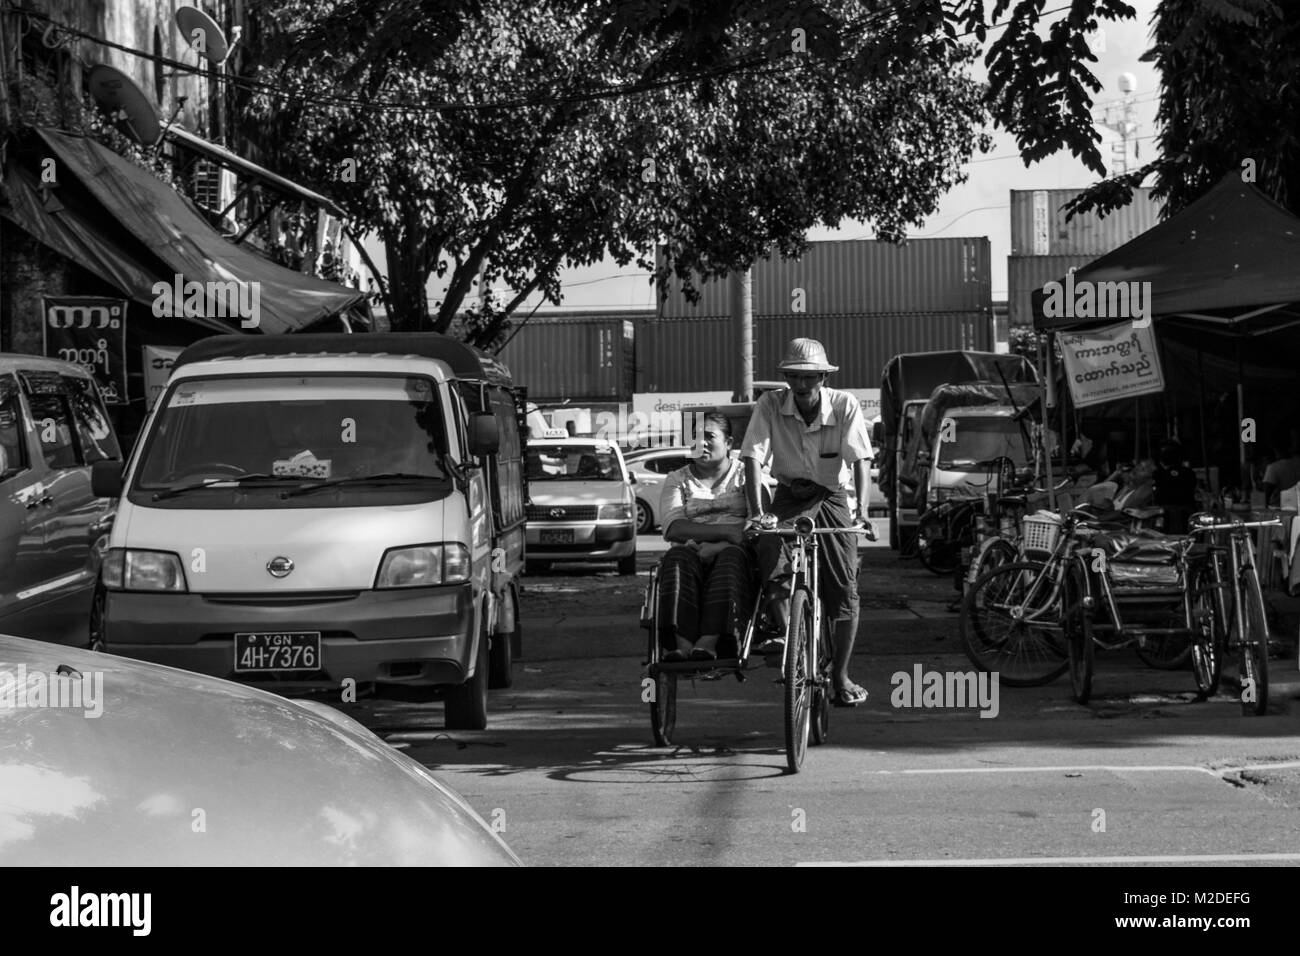 A Burmese couple, possibly husband and wife, with the man driving a cycle rickshaw in  the busy Yangon traffic and - Stock Image